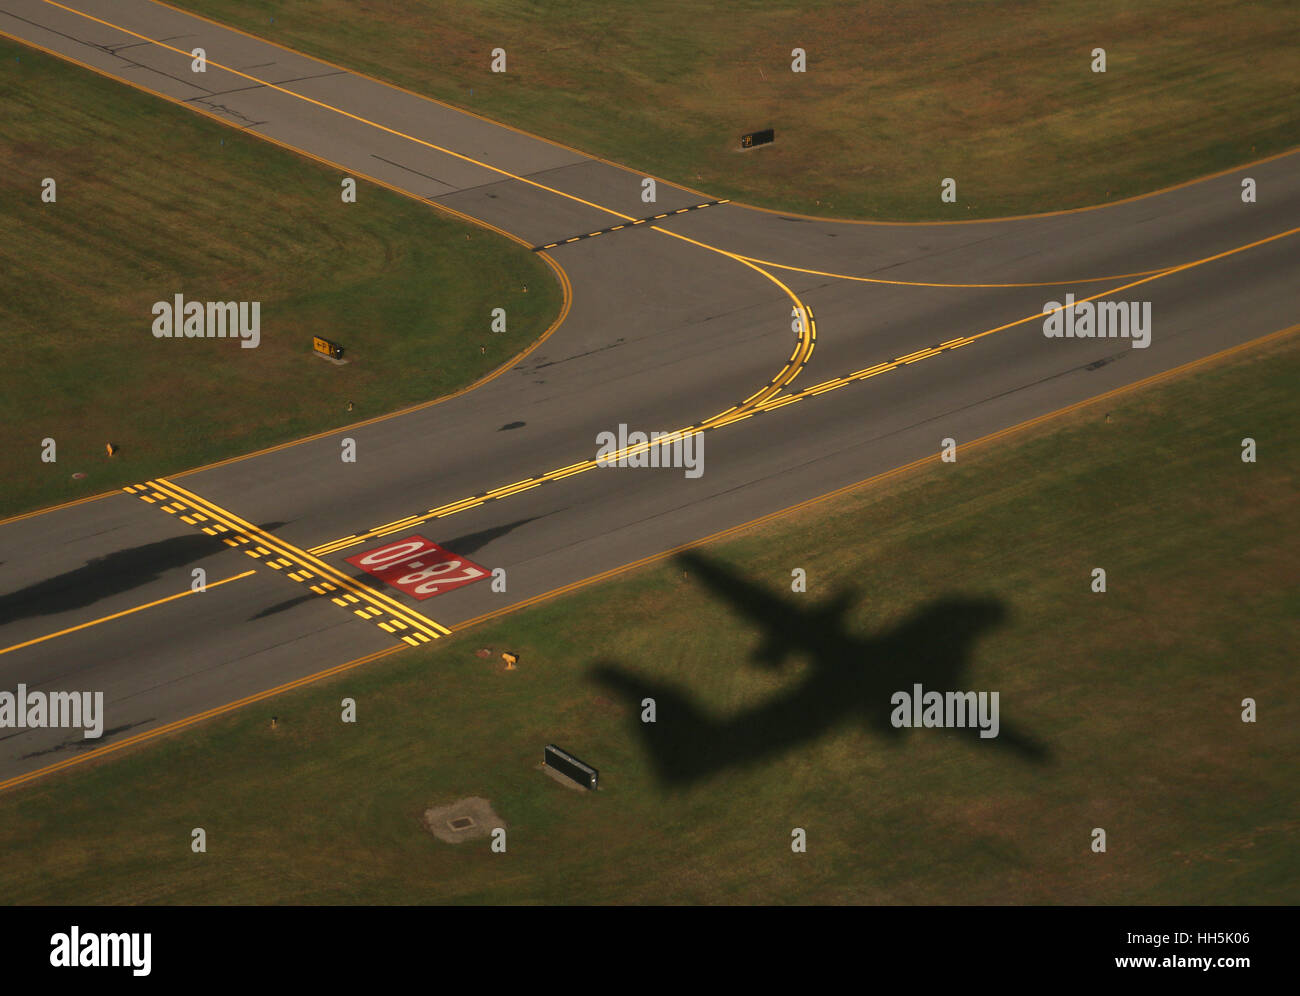 Airplane shadow takeoff on runway airport New York - Stock Image